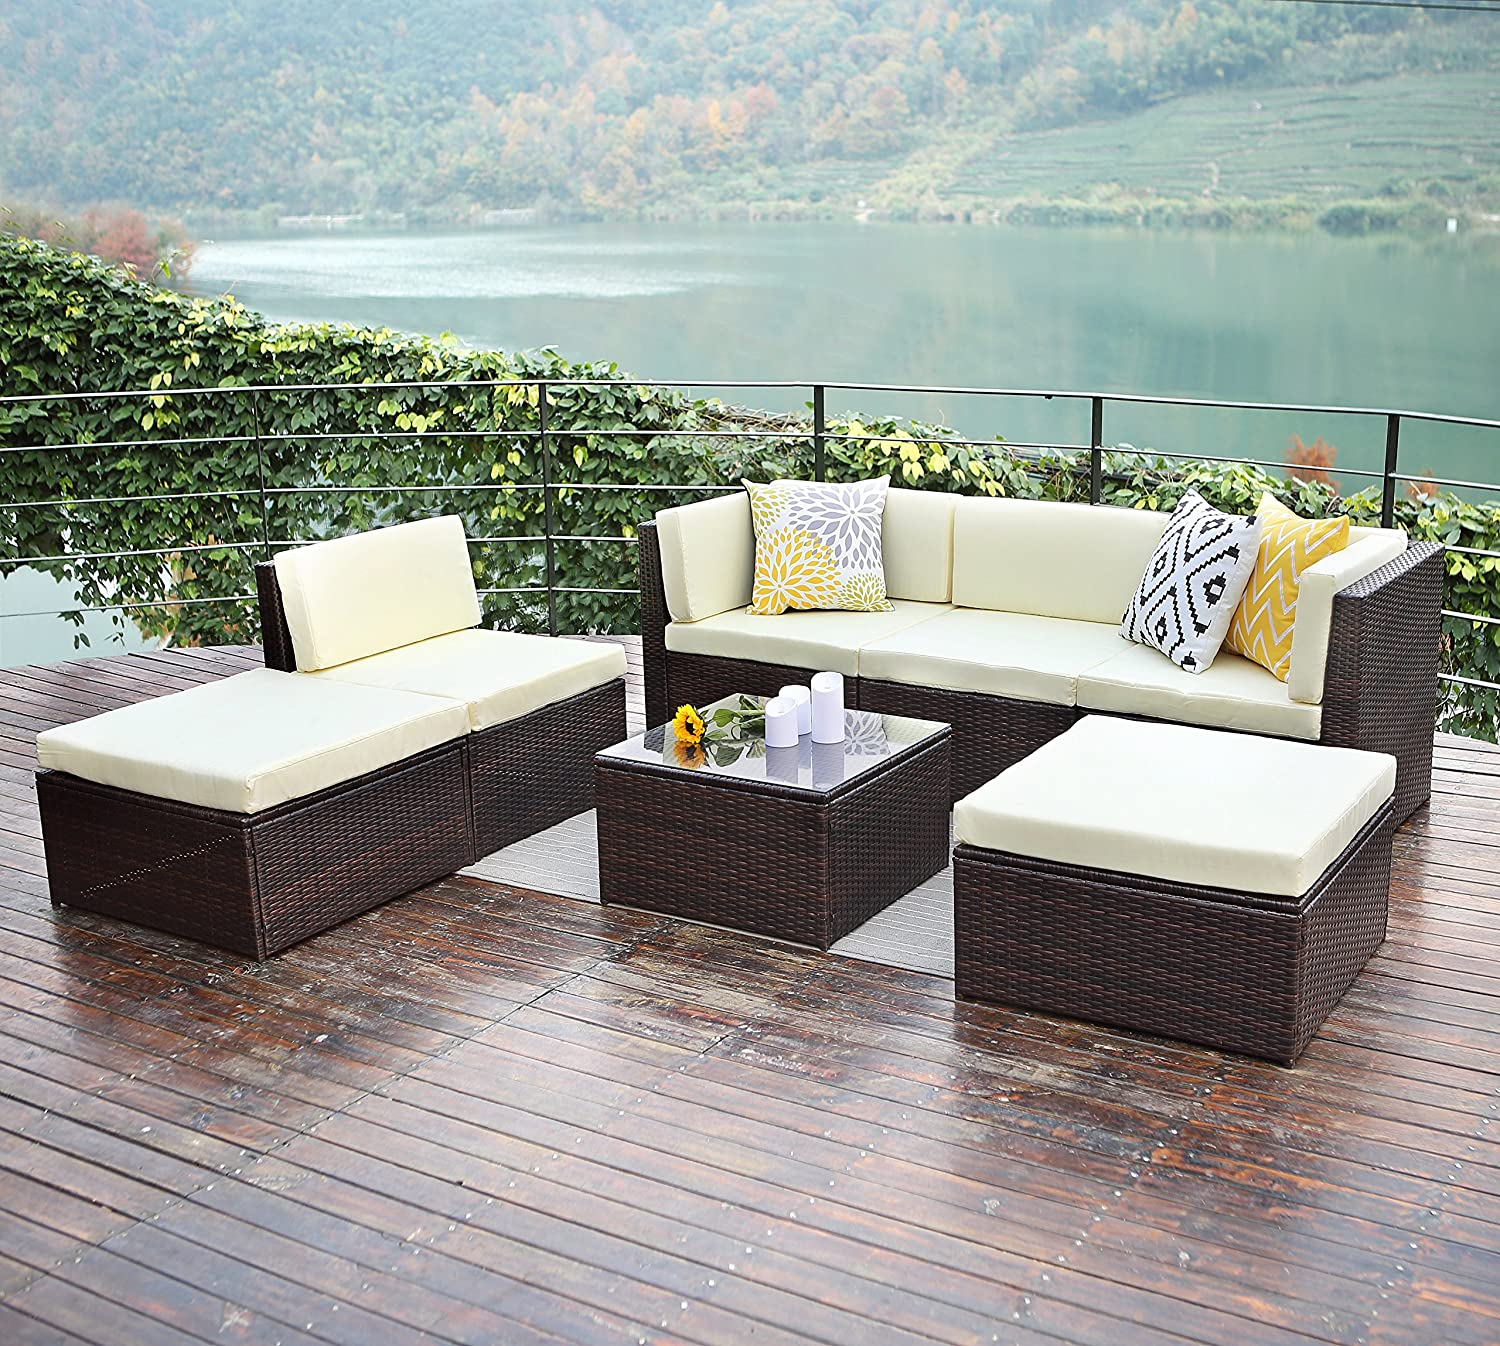 all aluminum dining modern sectional weather brown al wicker sofa com fresco dark offer fgqxqar furniture patio dinner classy sets amazon opportunity